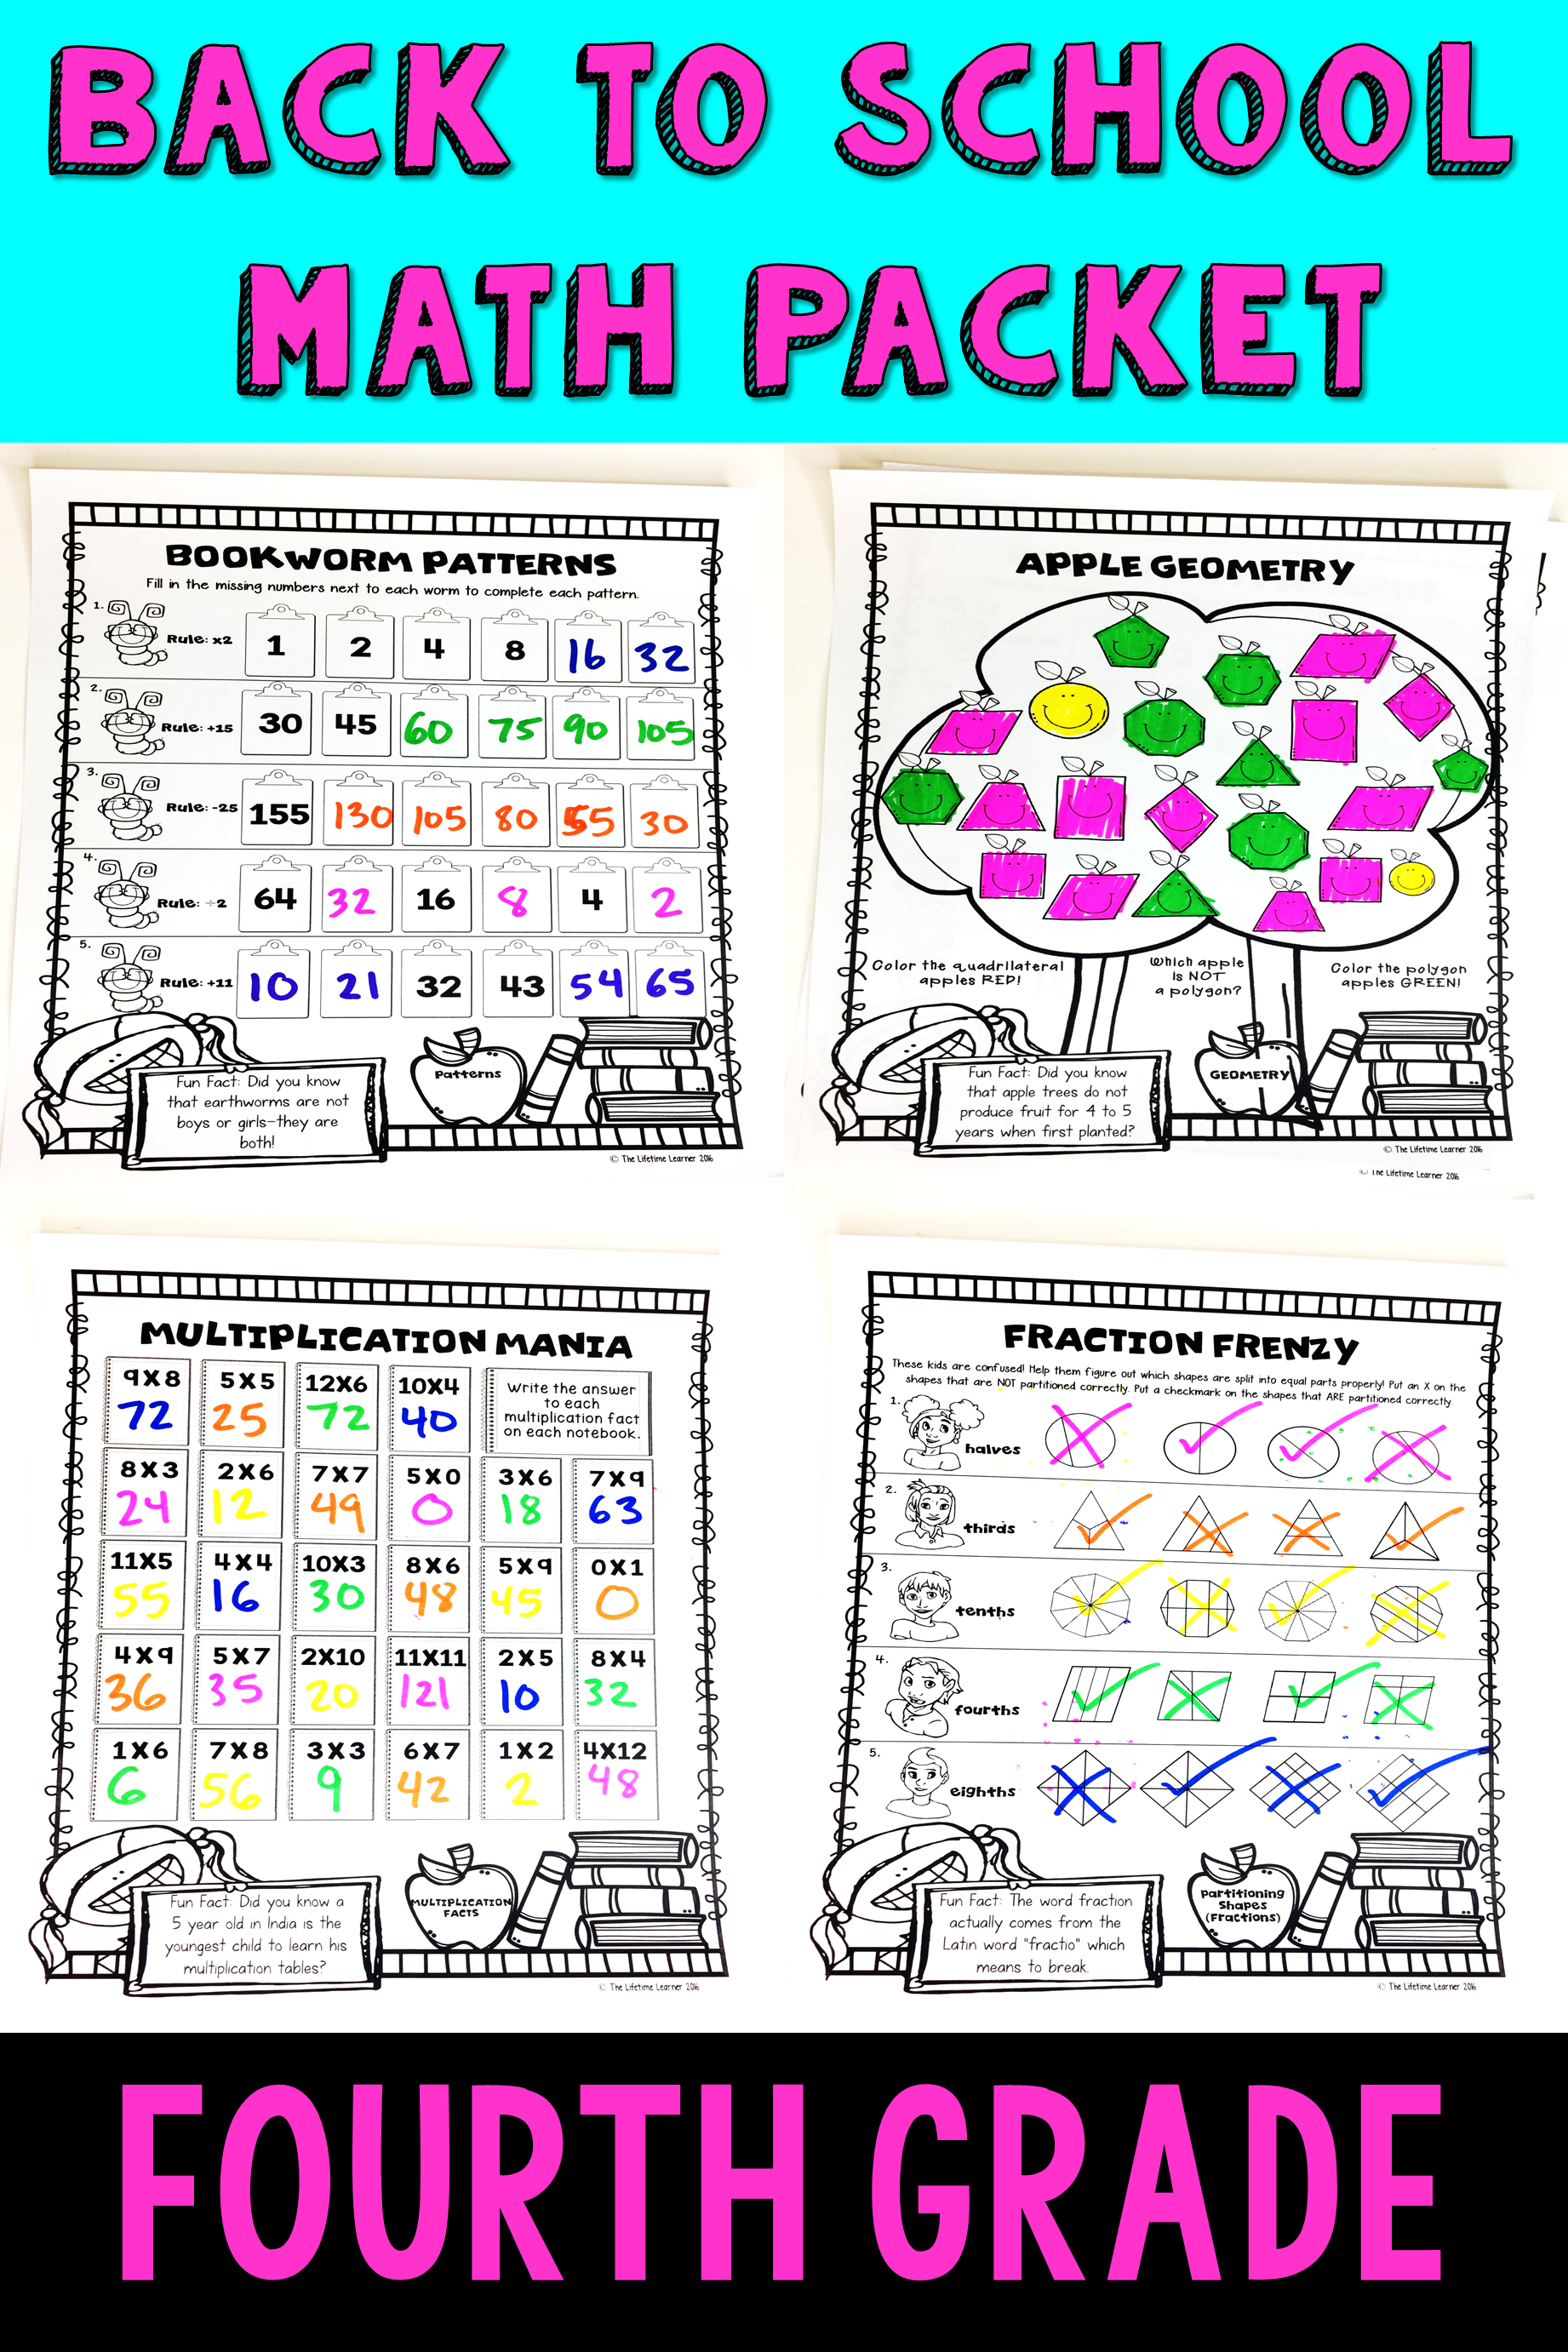 4th Grade Back To School Math Packet With Images